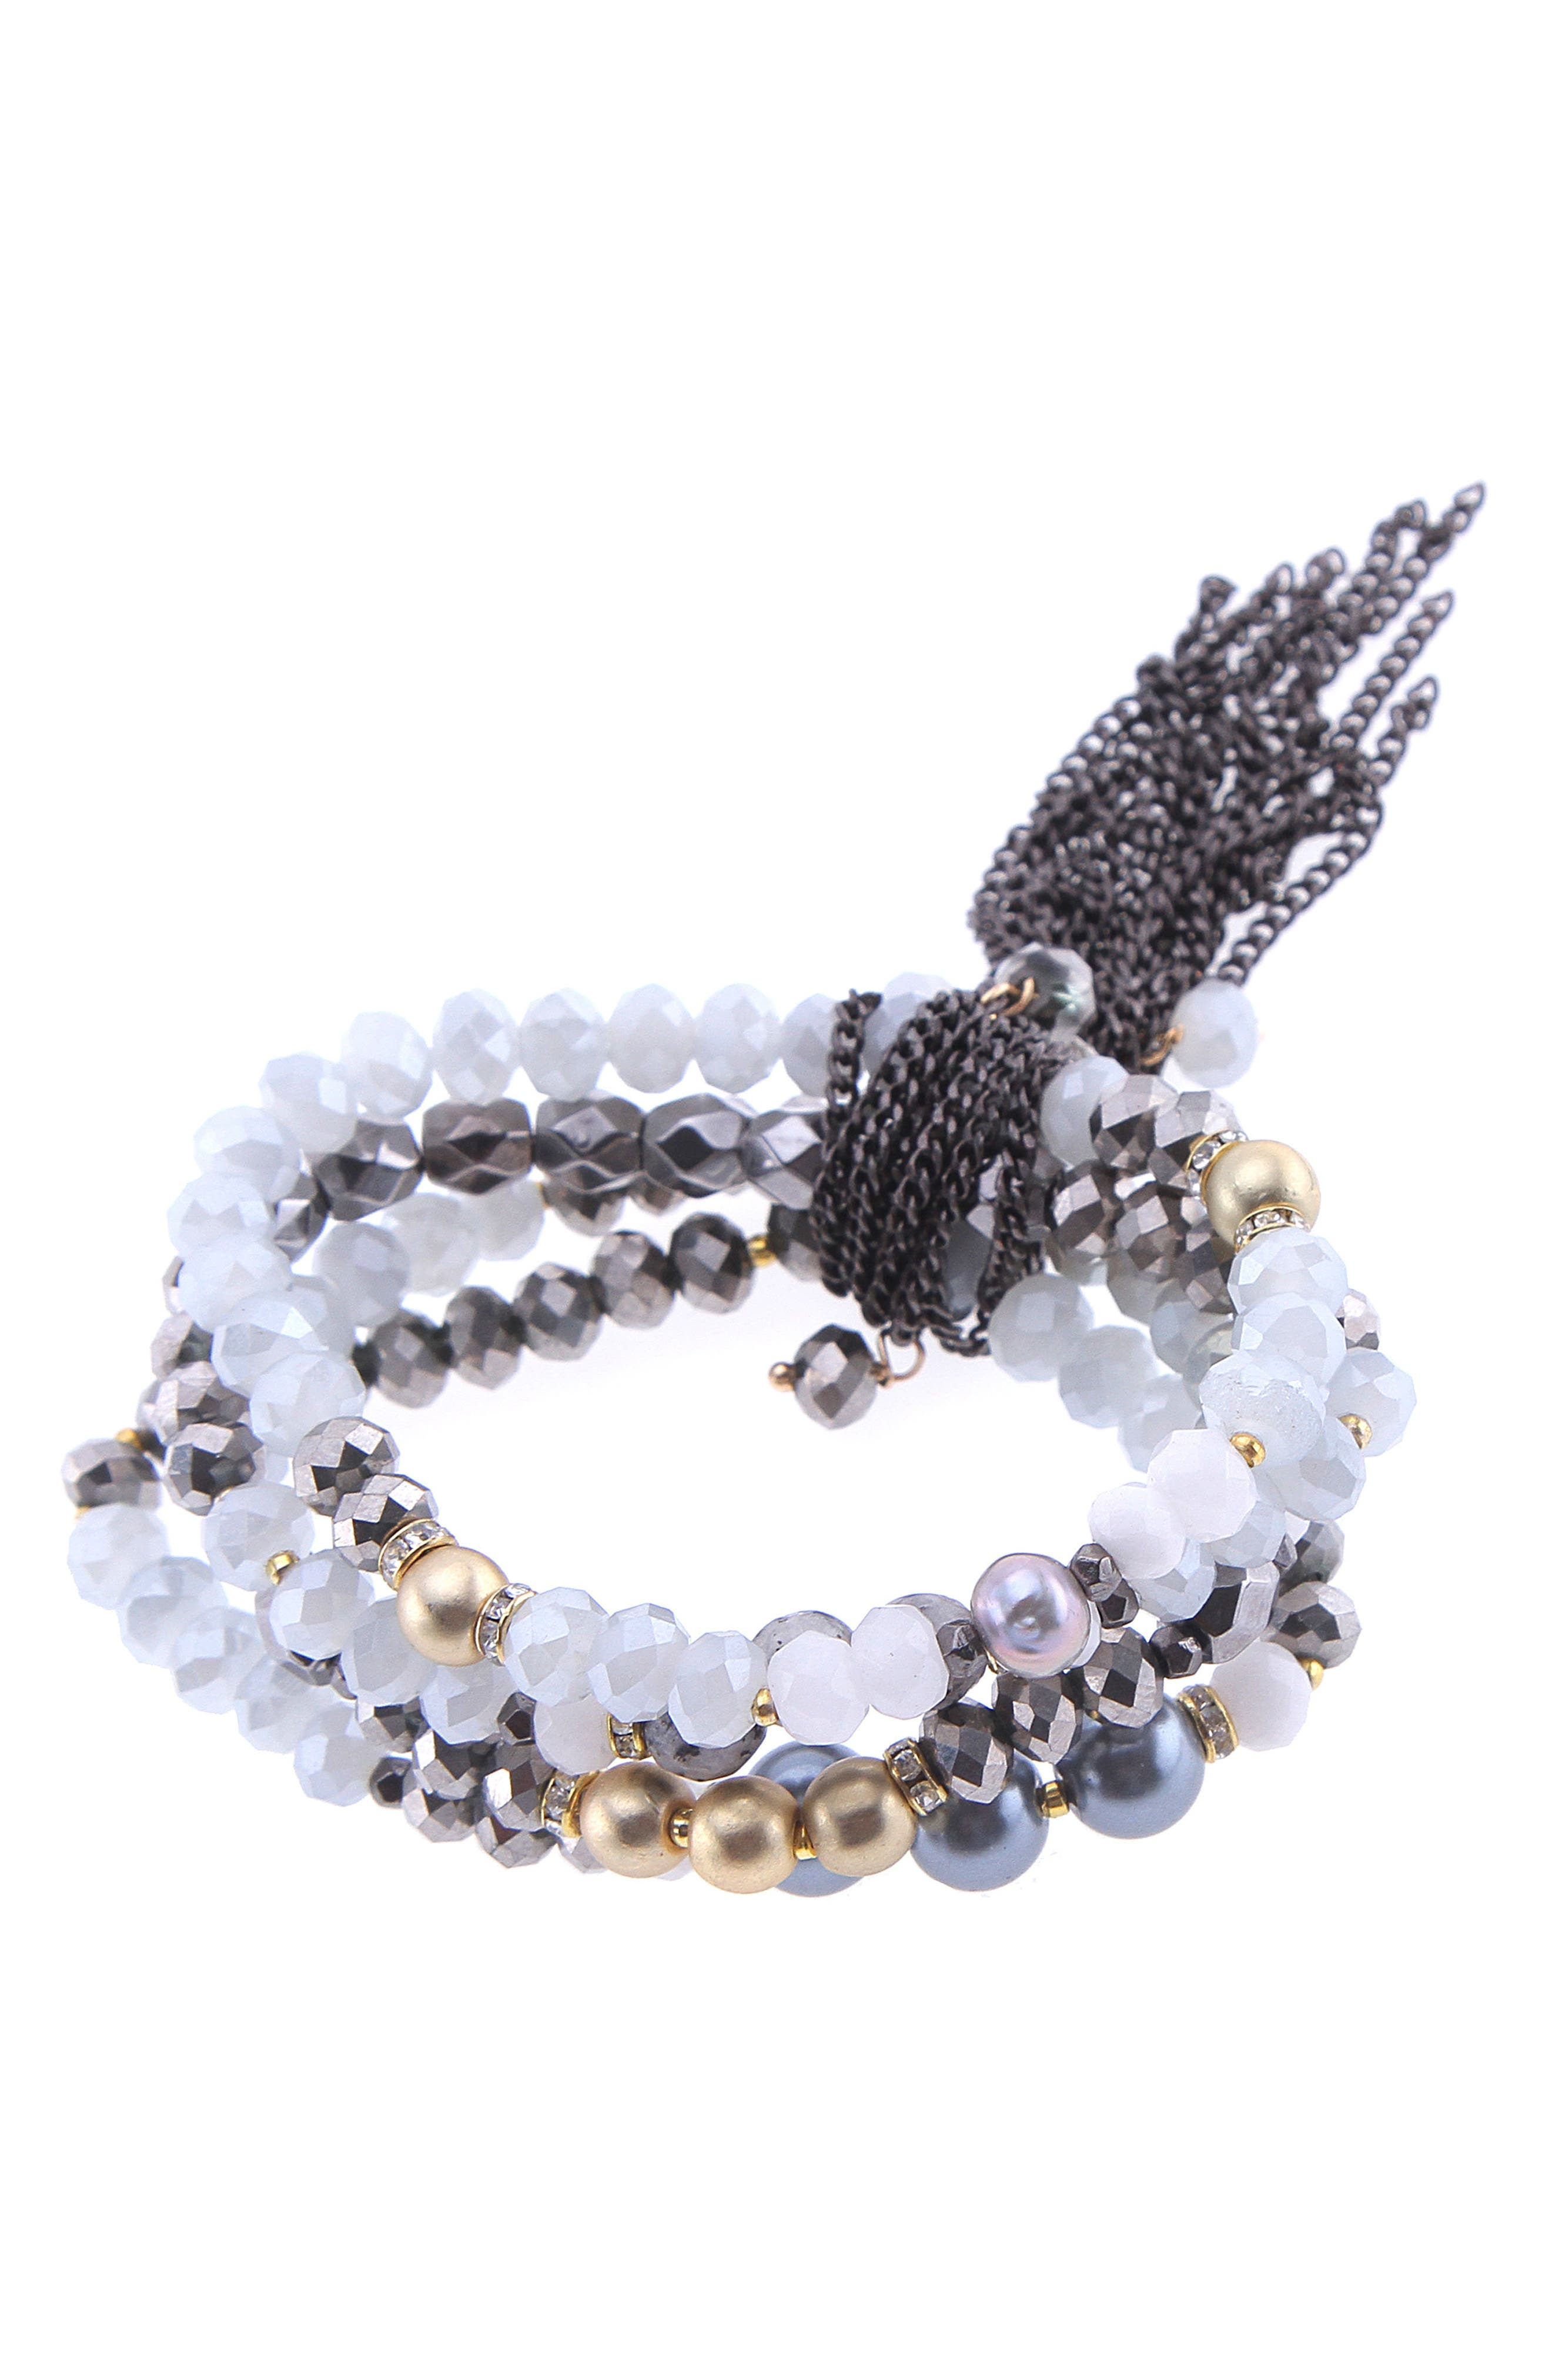 Crystal & Freshwater Pearl Stretch Bracelet,                             Main thumbnail 1, color,                             White